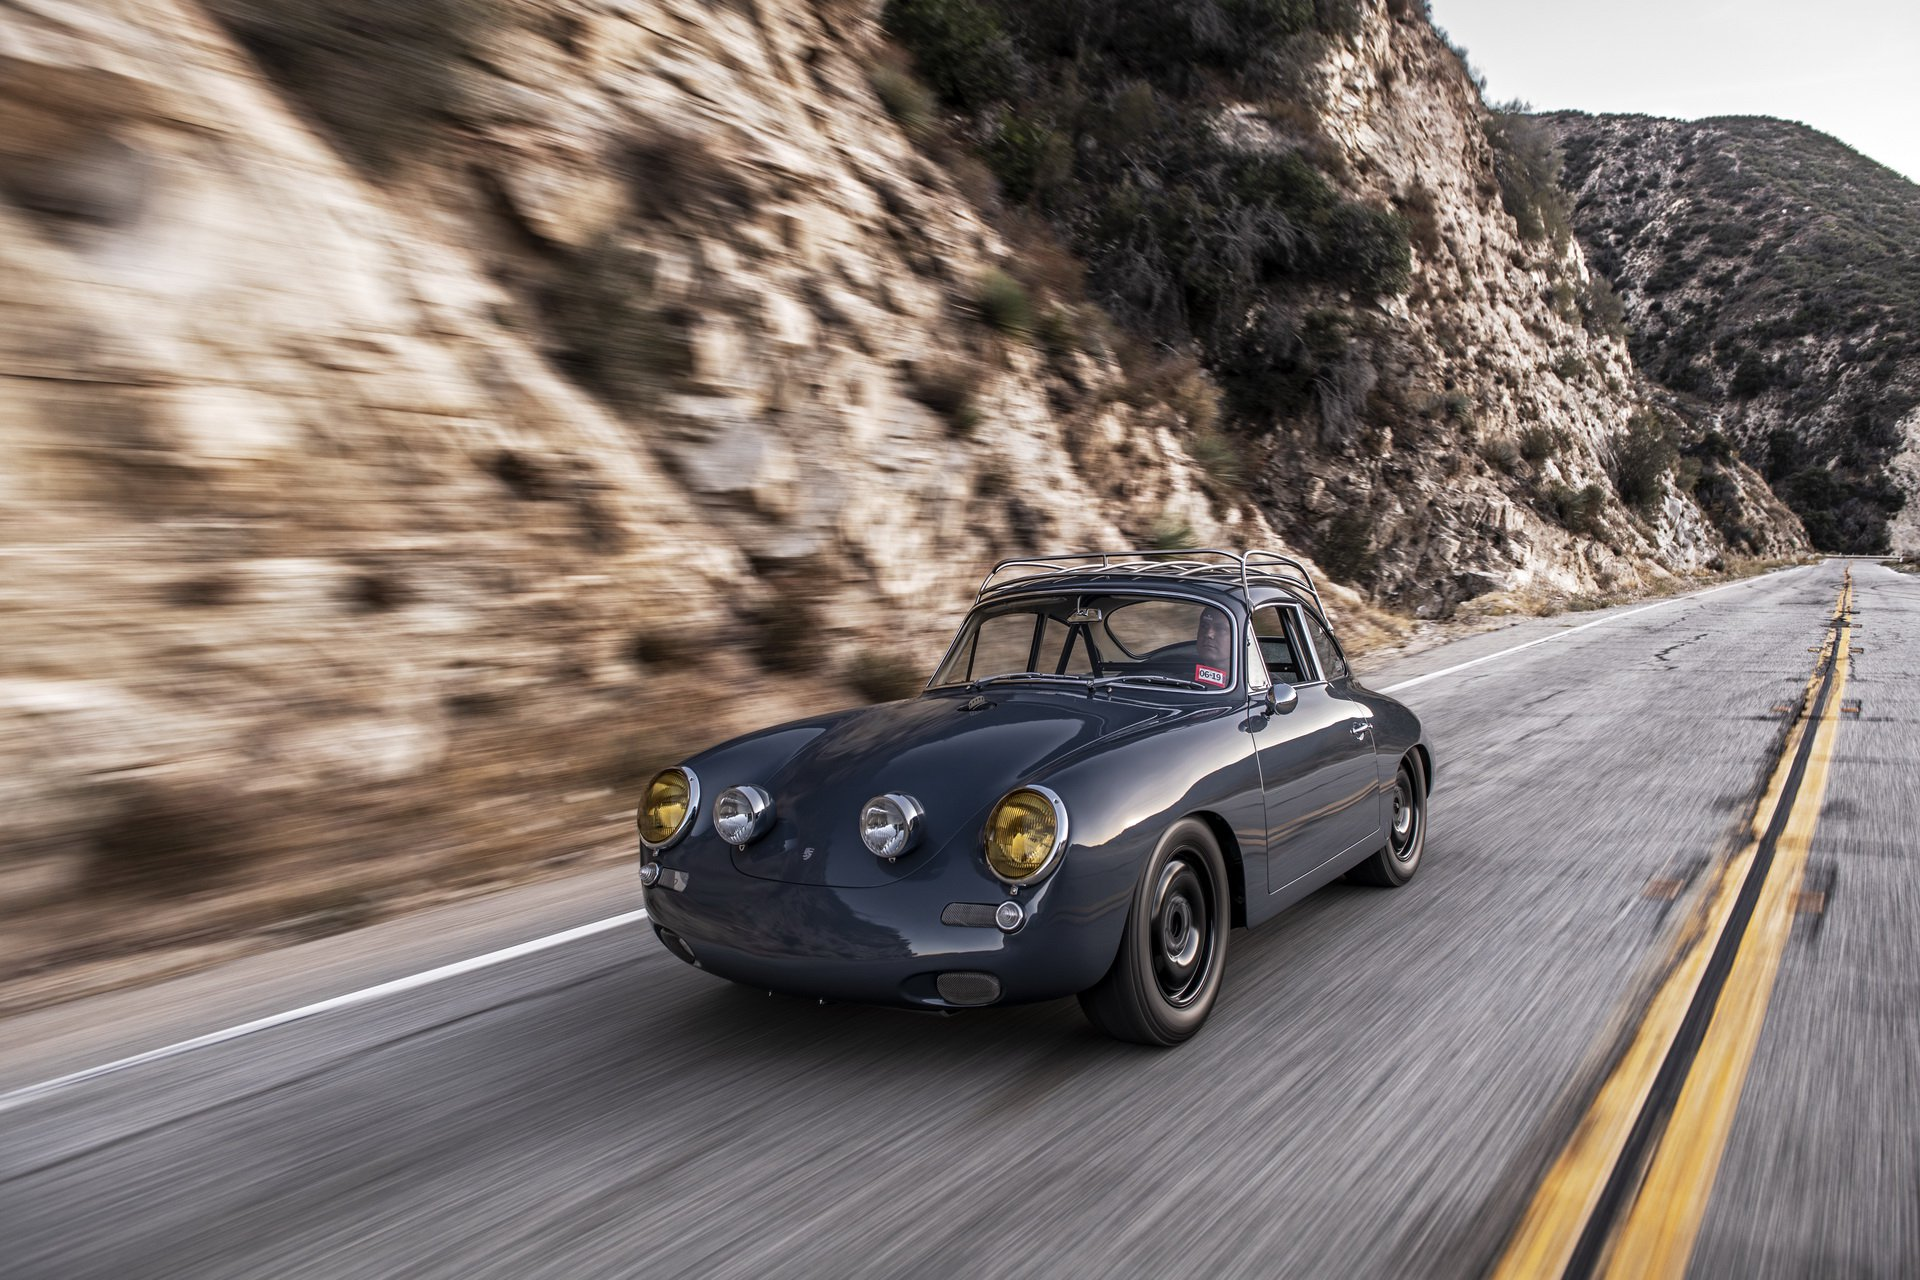 AWD Porsche 356 Coupe by Emory Motorsports (43)